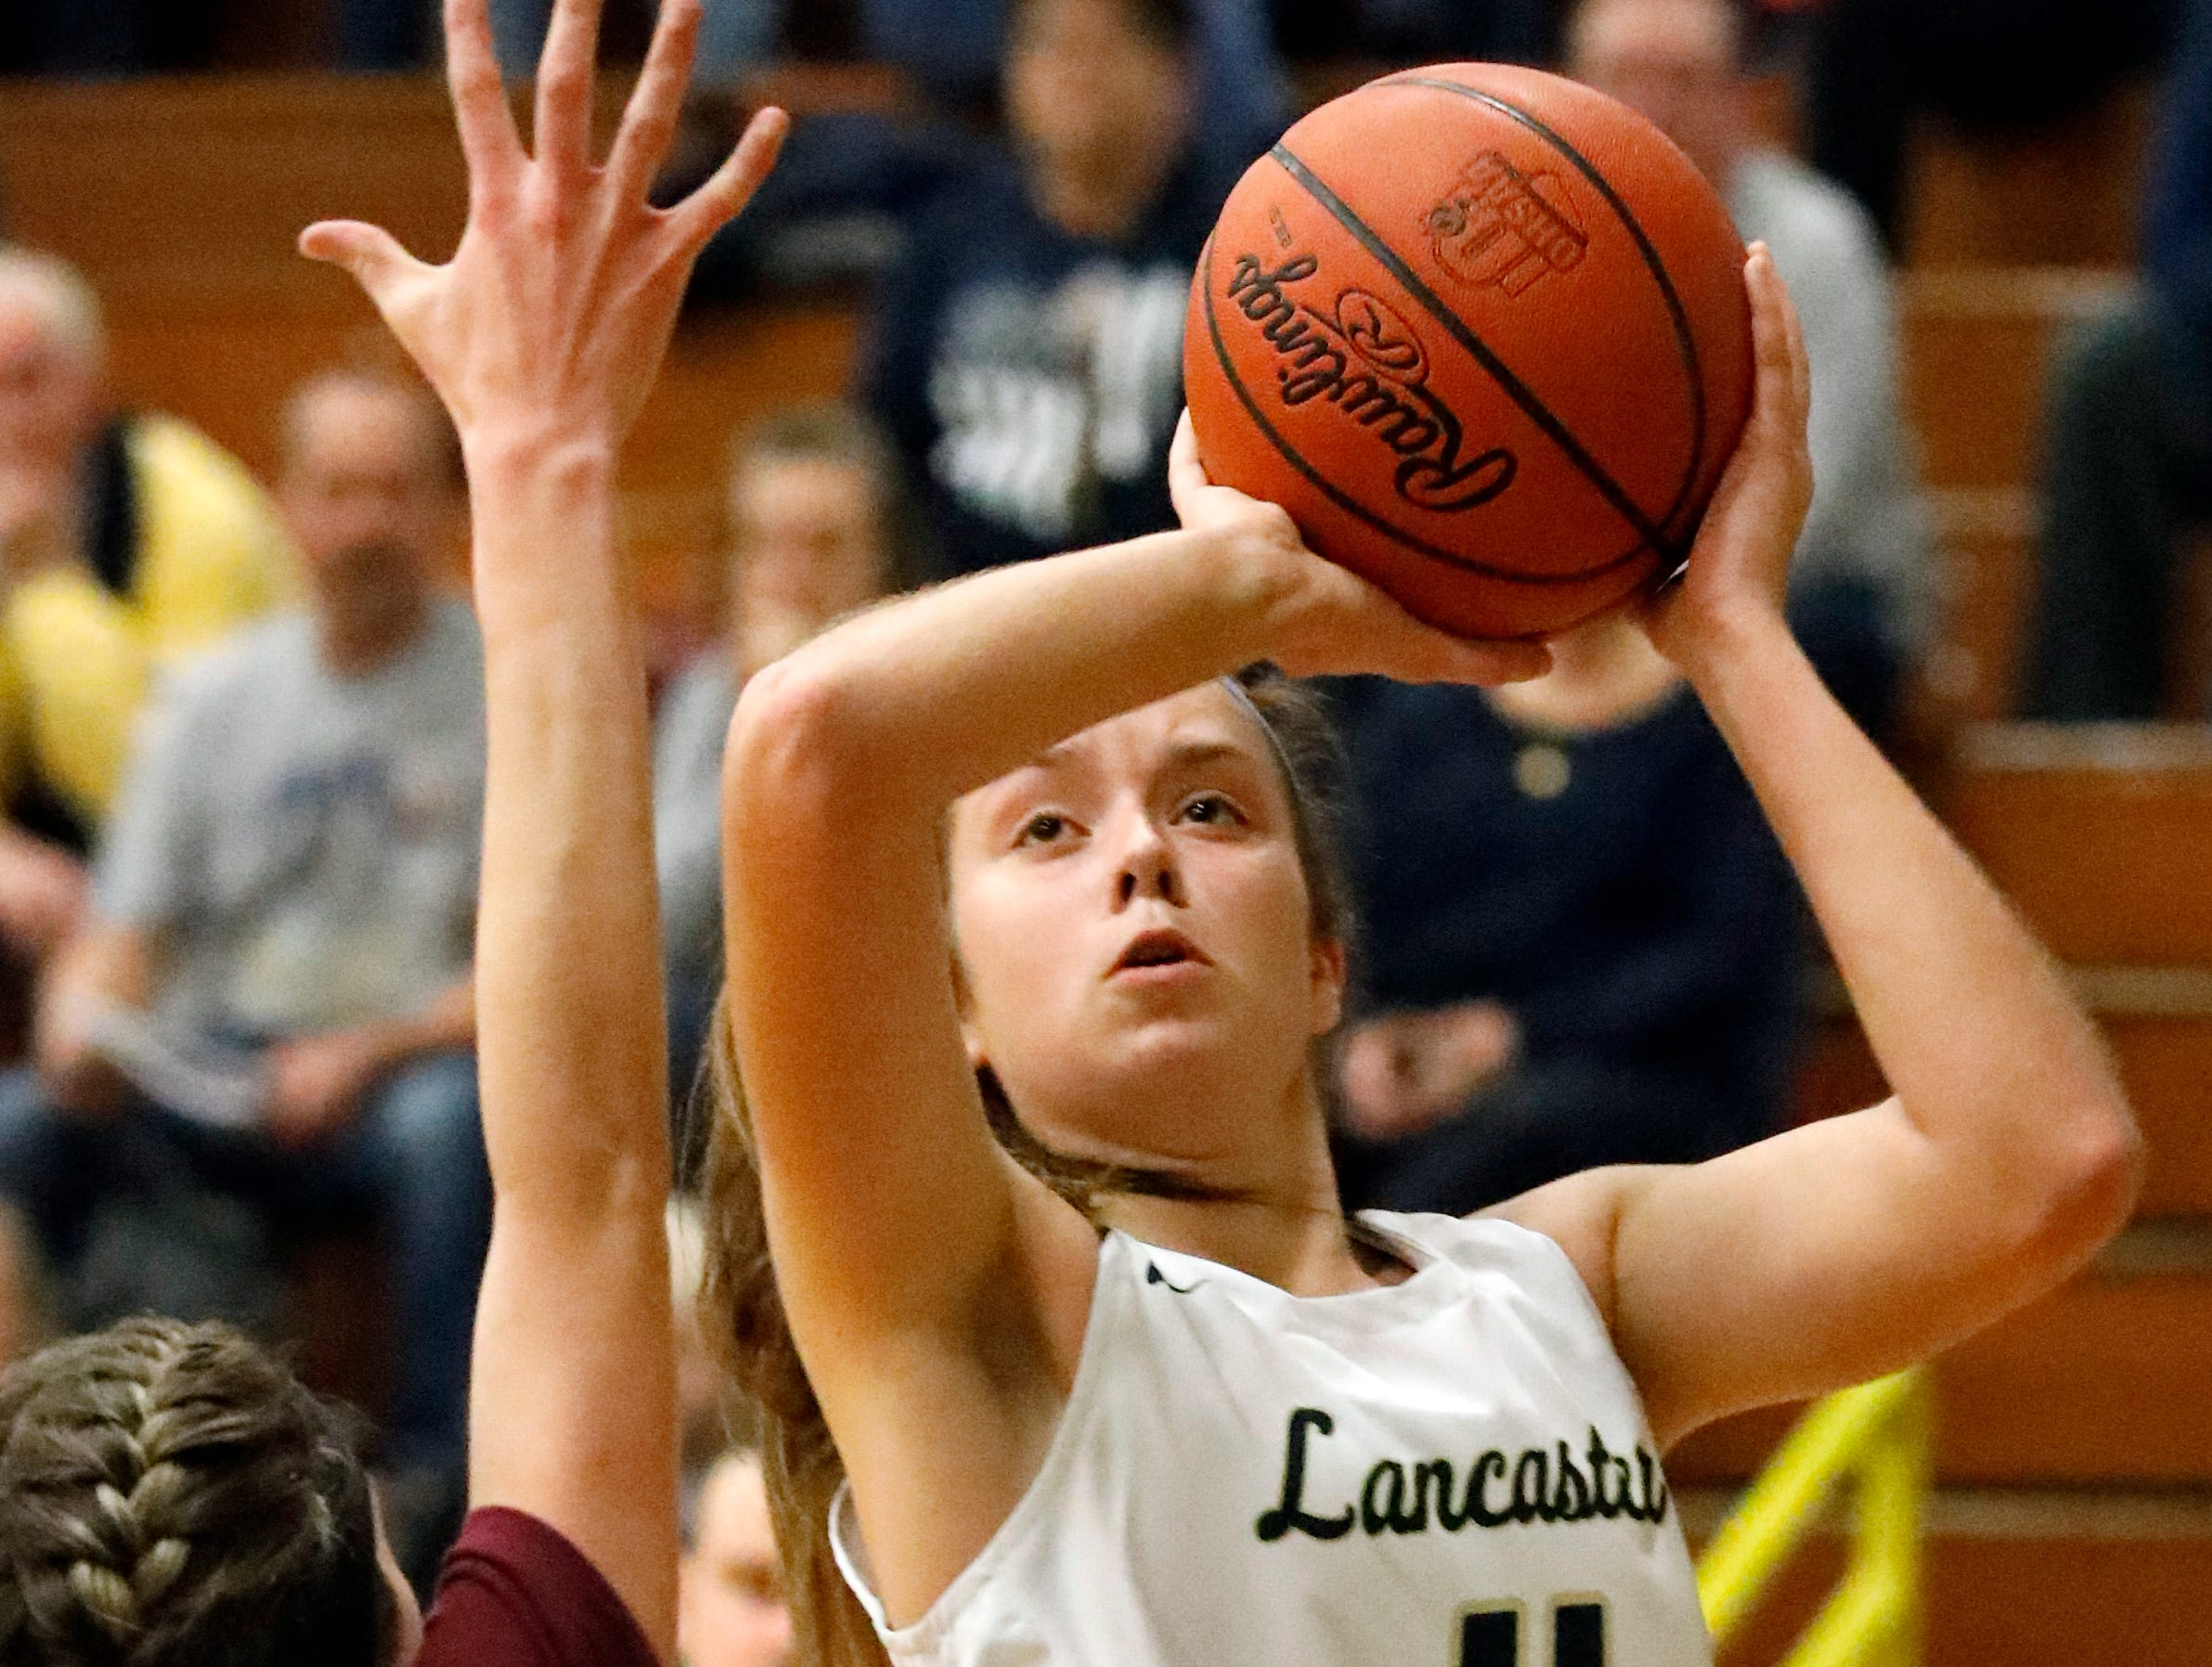 Lancaster's Brittney Azbell prepares to shoot the ball during Friday night's game, Dec. 28, 2018, at Lancaster High School in Lancaster. The Golden Gales won the game over Licking Heights 43-37.